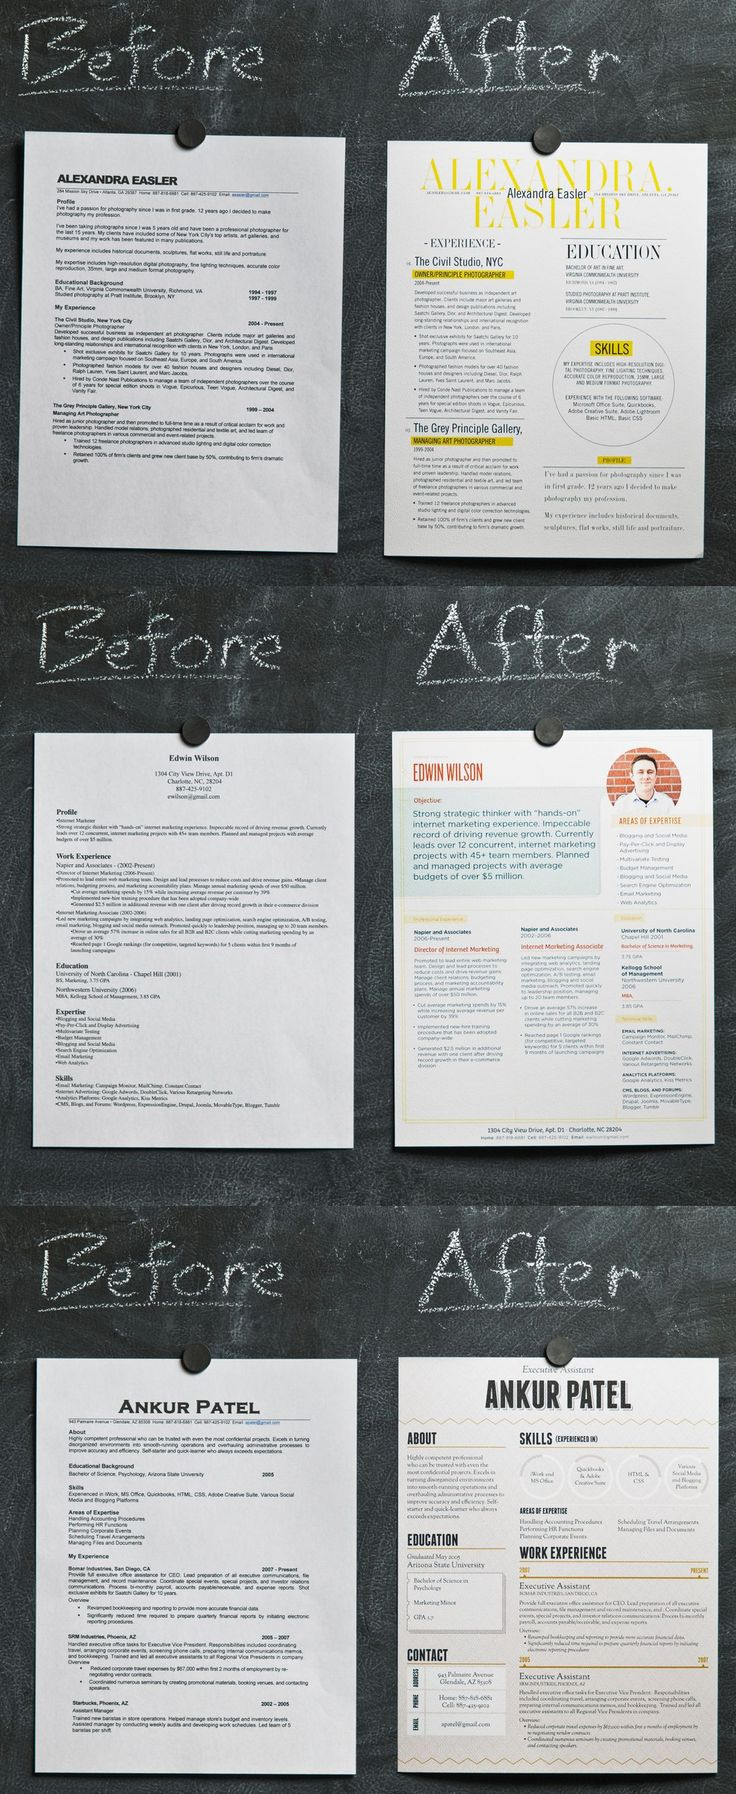 Resume tutorial. We are becoming such a visual society. Having a well designed resume will definitely make yours stand out from the others!